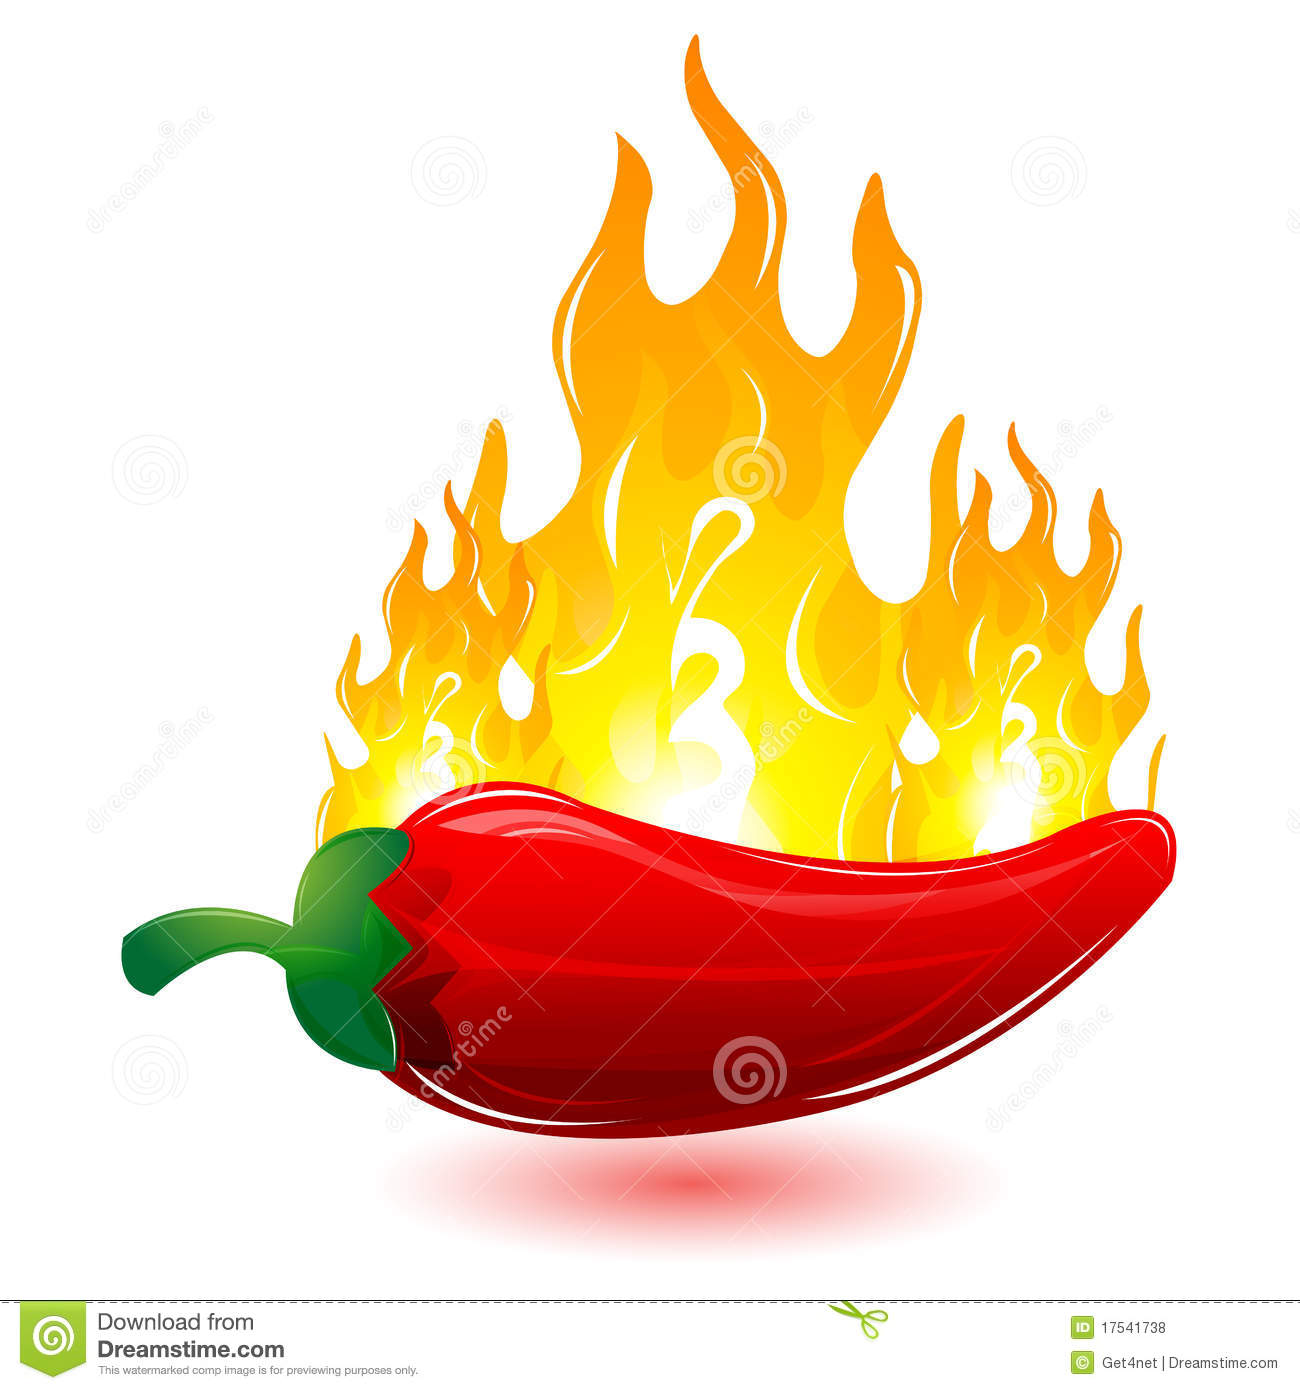 Red Chilli With Fire Royalty Free Stock Photos - Image: 17541738